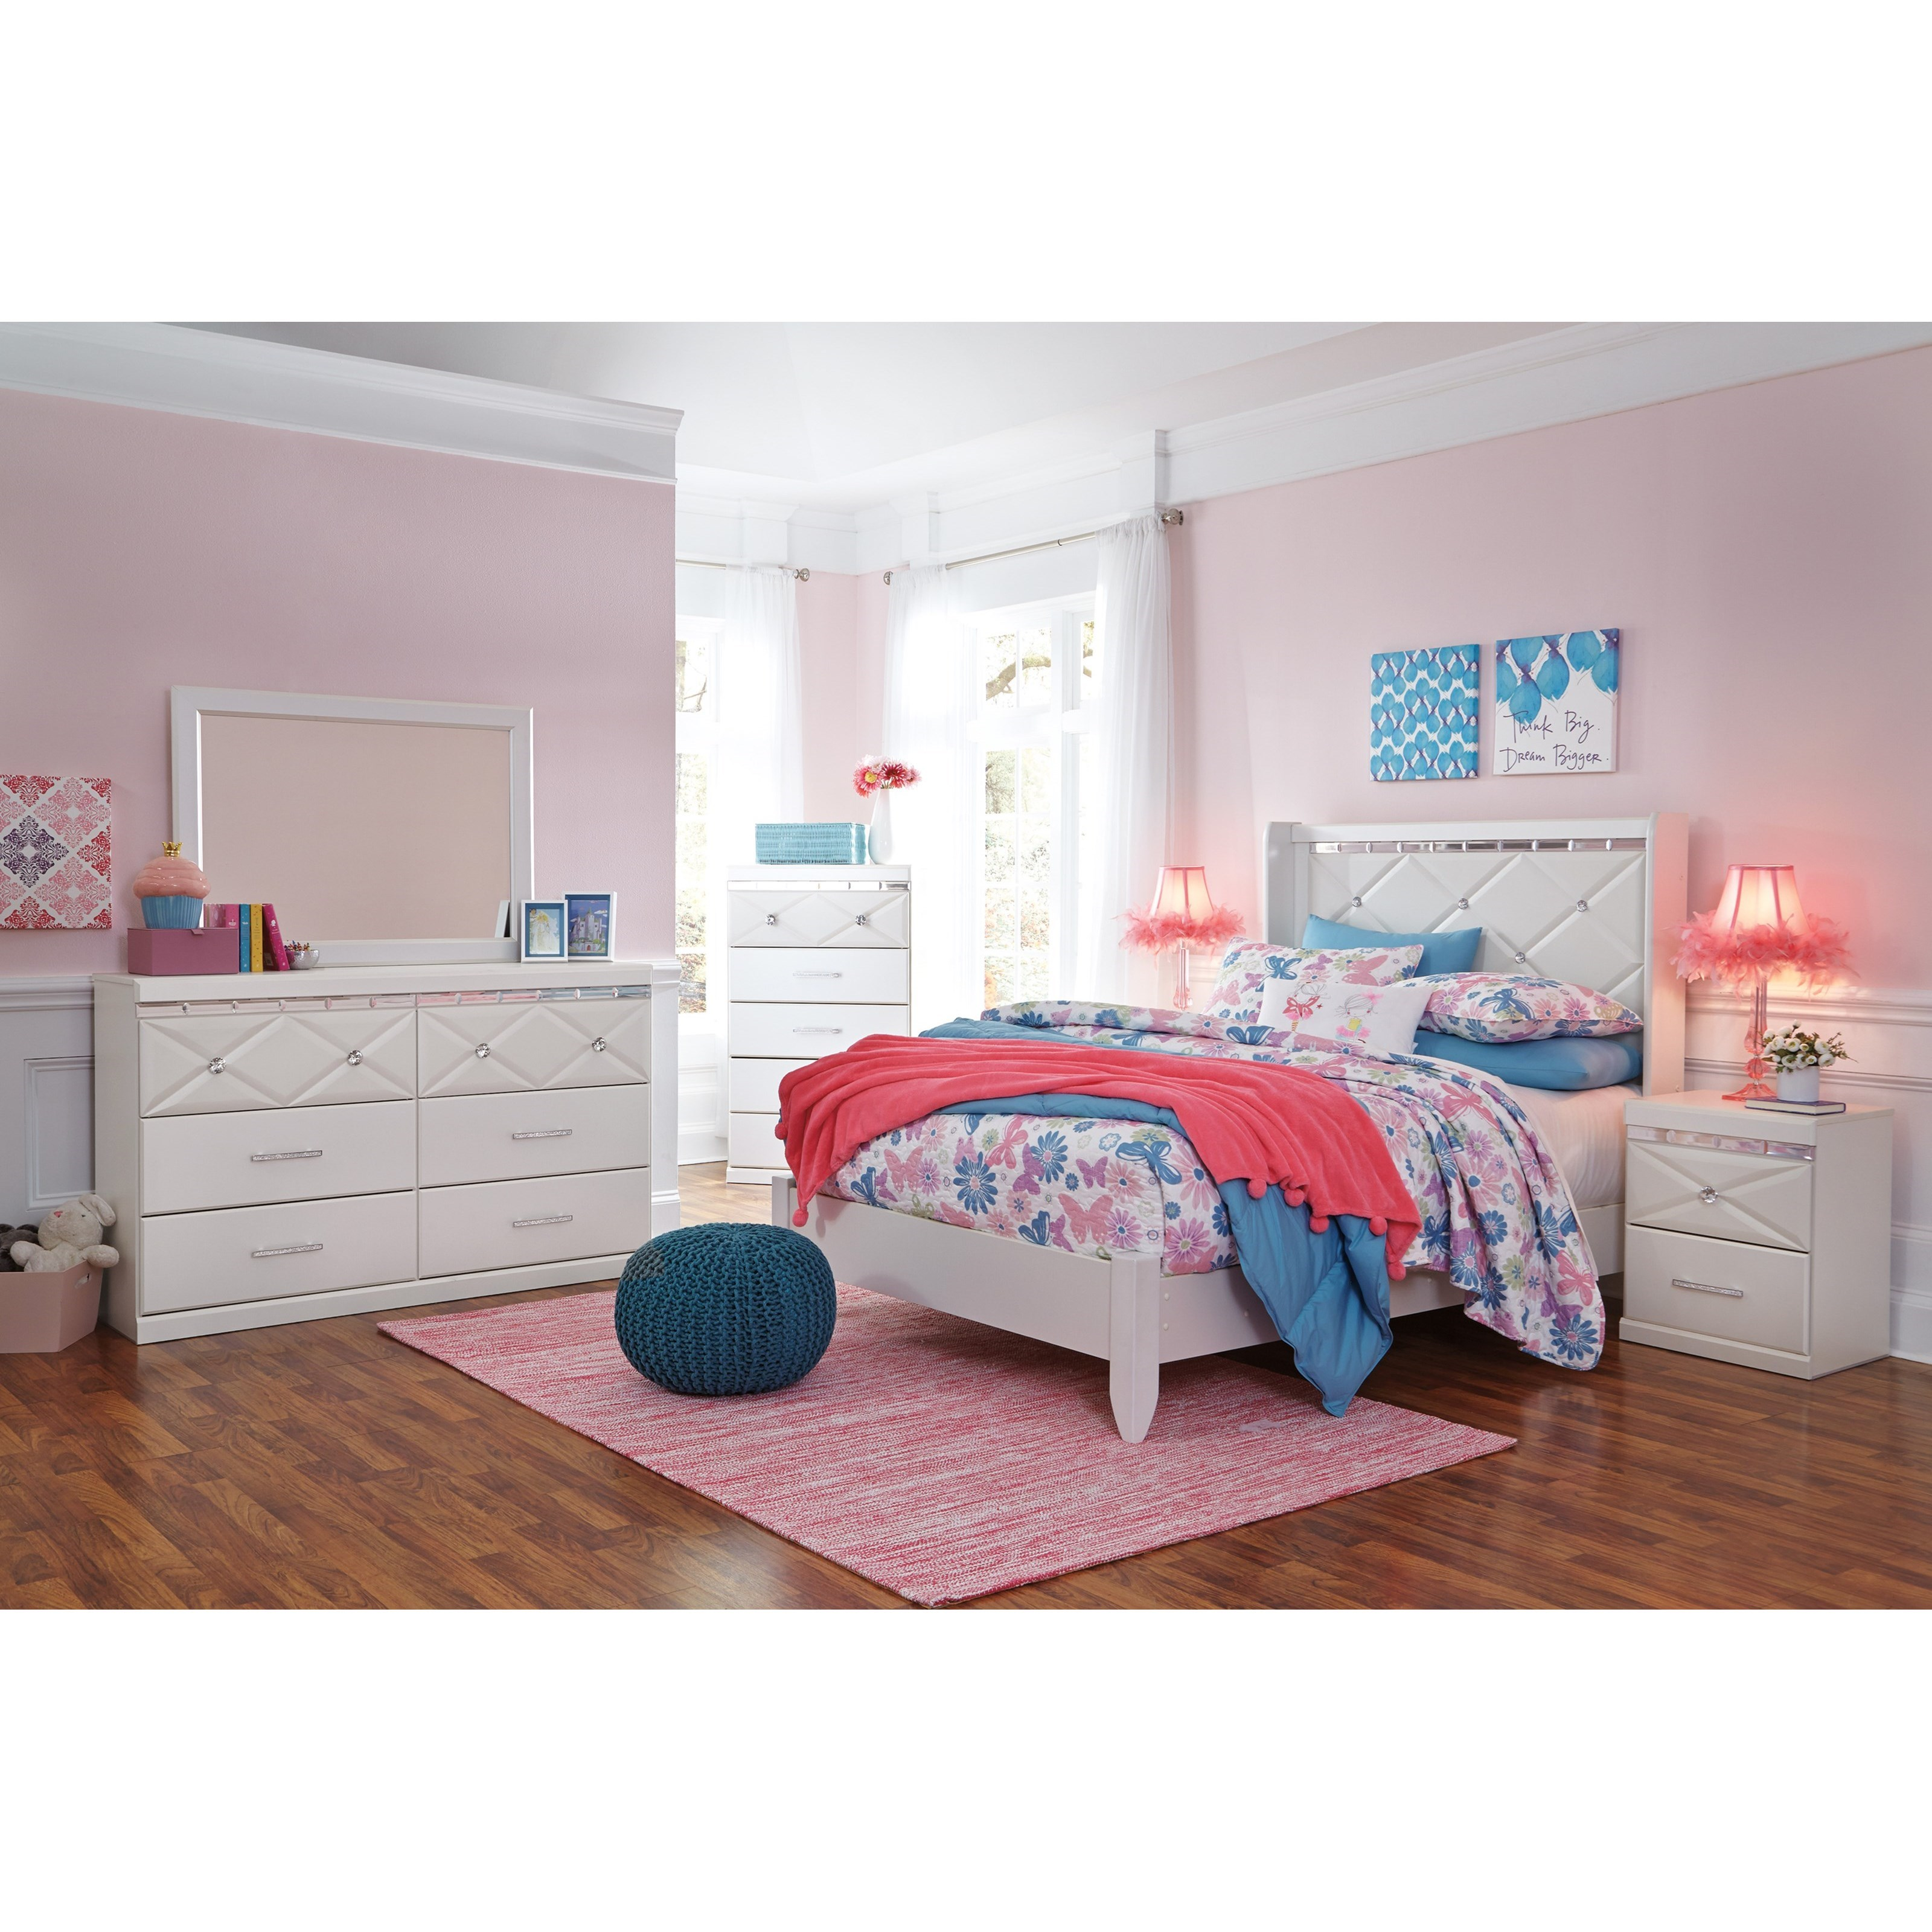 Dreamur Full Bedroom Group by Signature Design by Ashley at Northeast Factory Direct